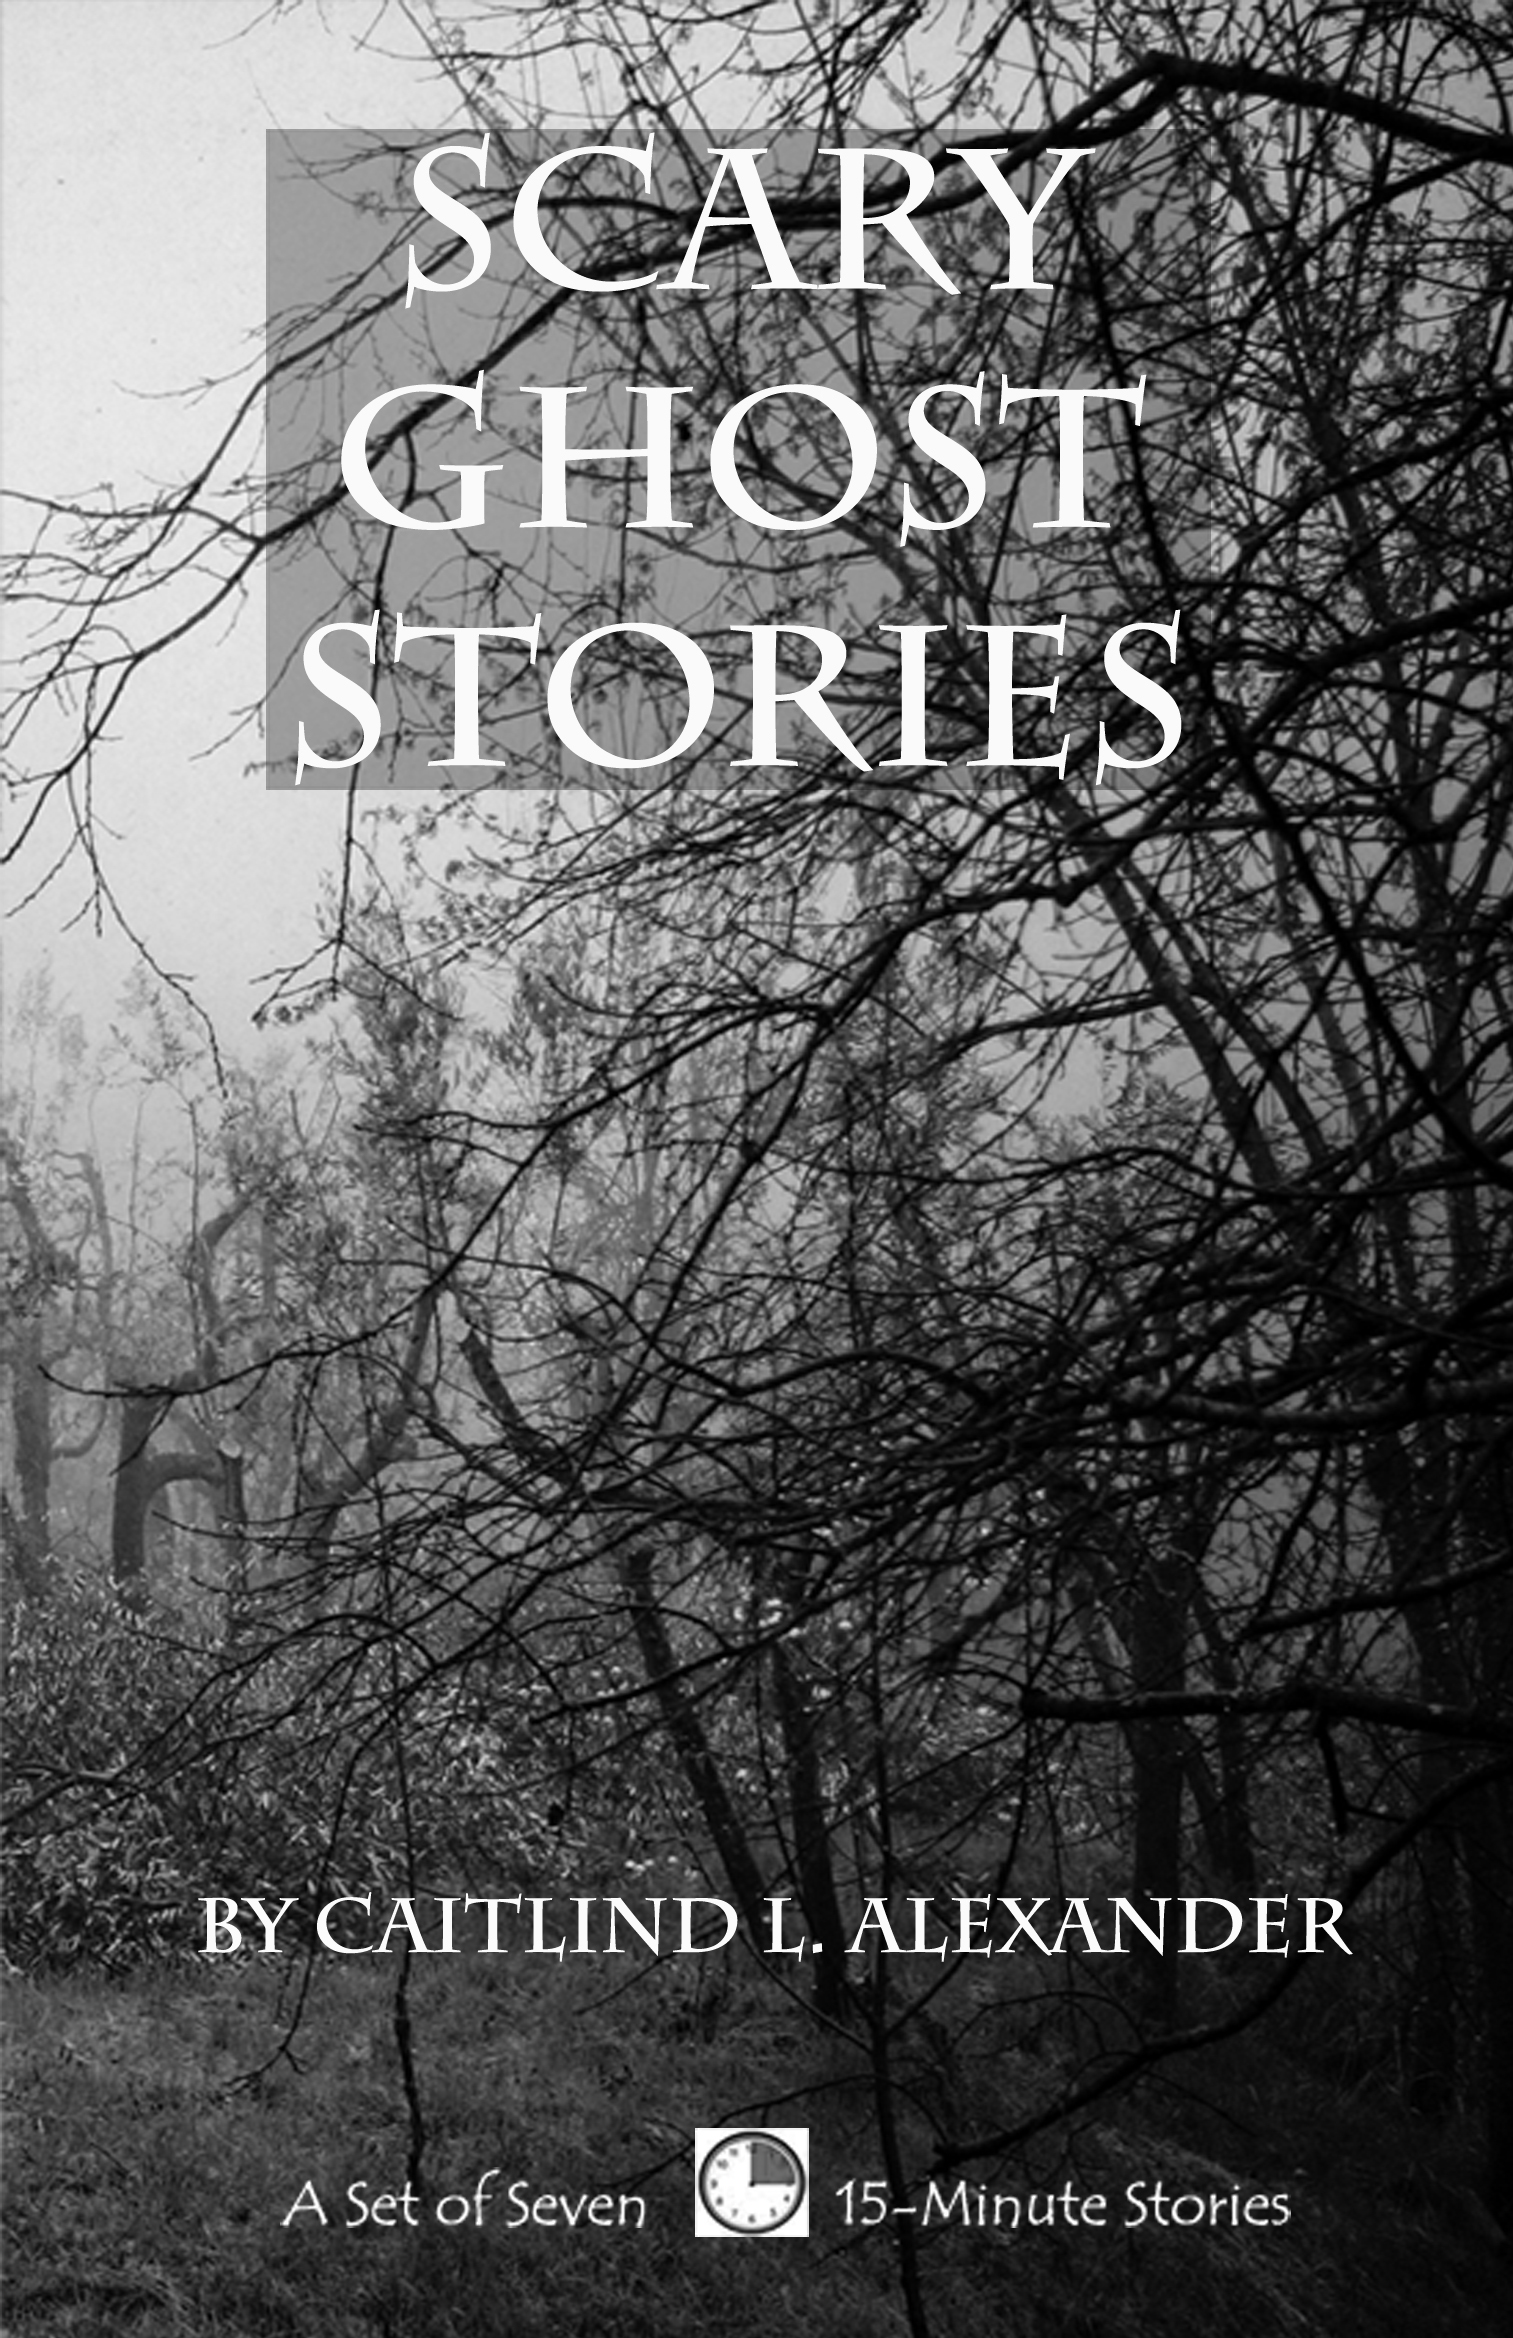 Scary Ghost Stories: A Collection of 15-Minute Ghost Stories By: Caitlind L. Alexander